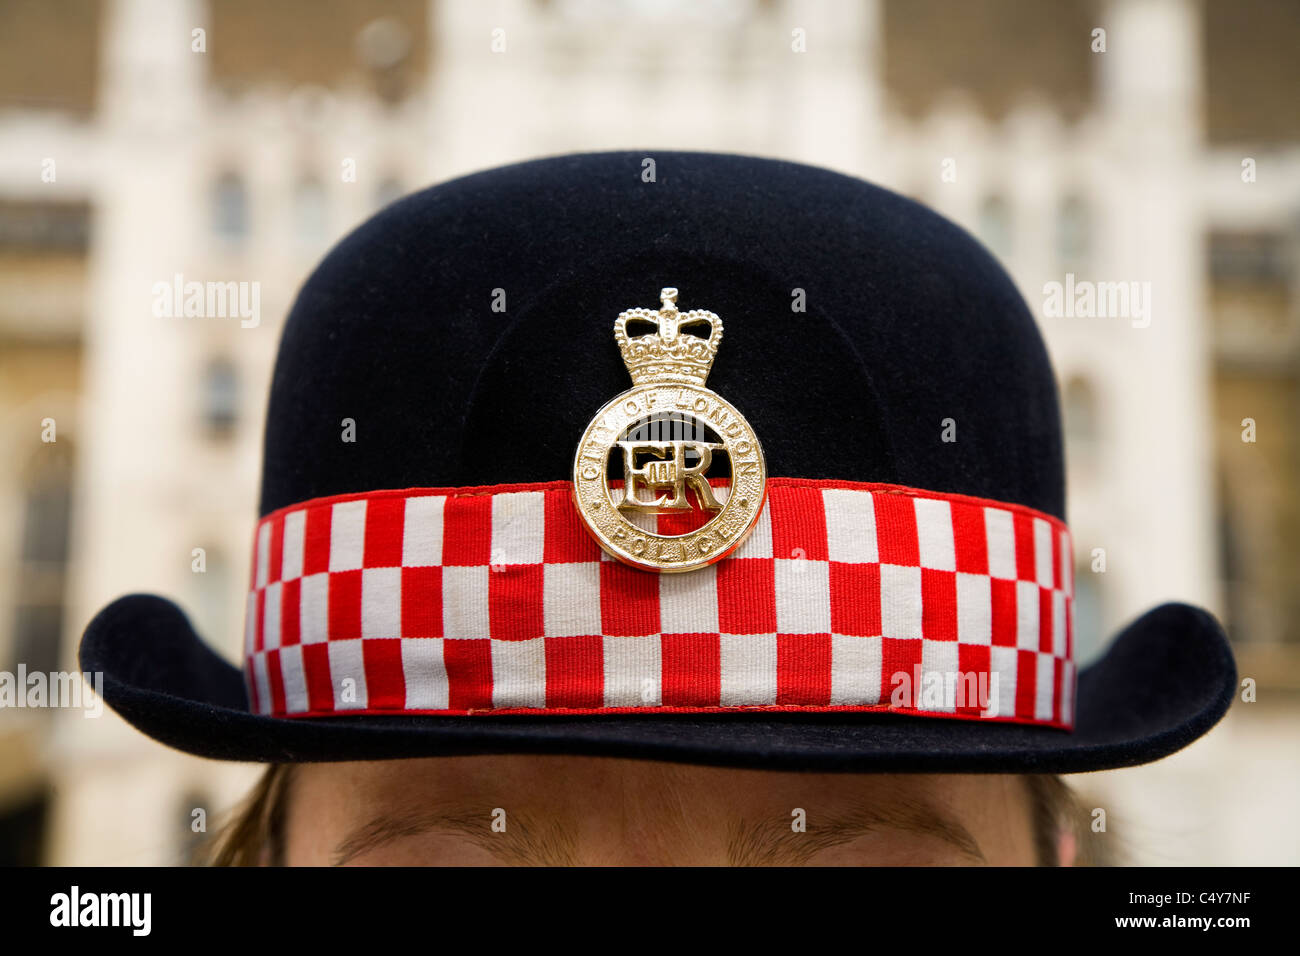 Woman police officer  s hat   City of London Police   London s  policewoman s   hat 58e76e3abcd0